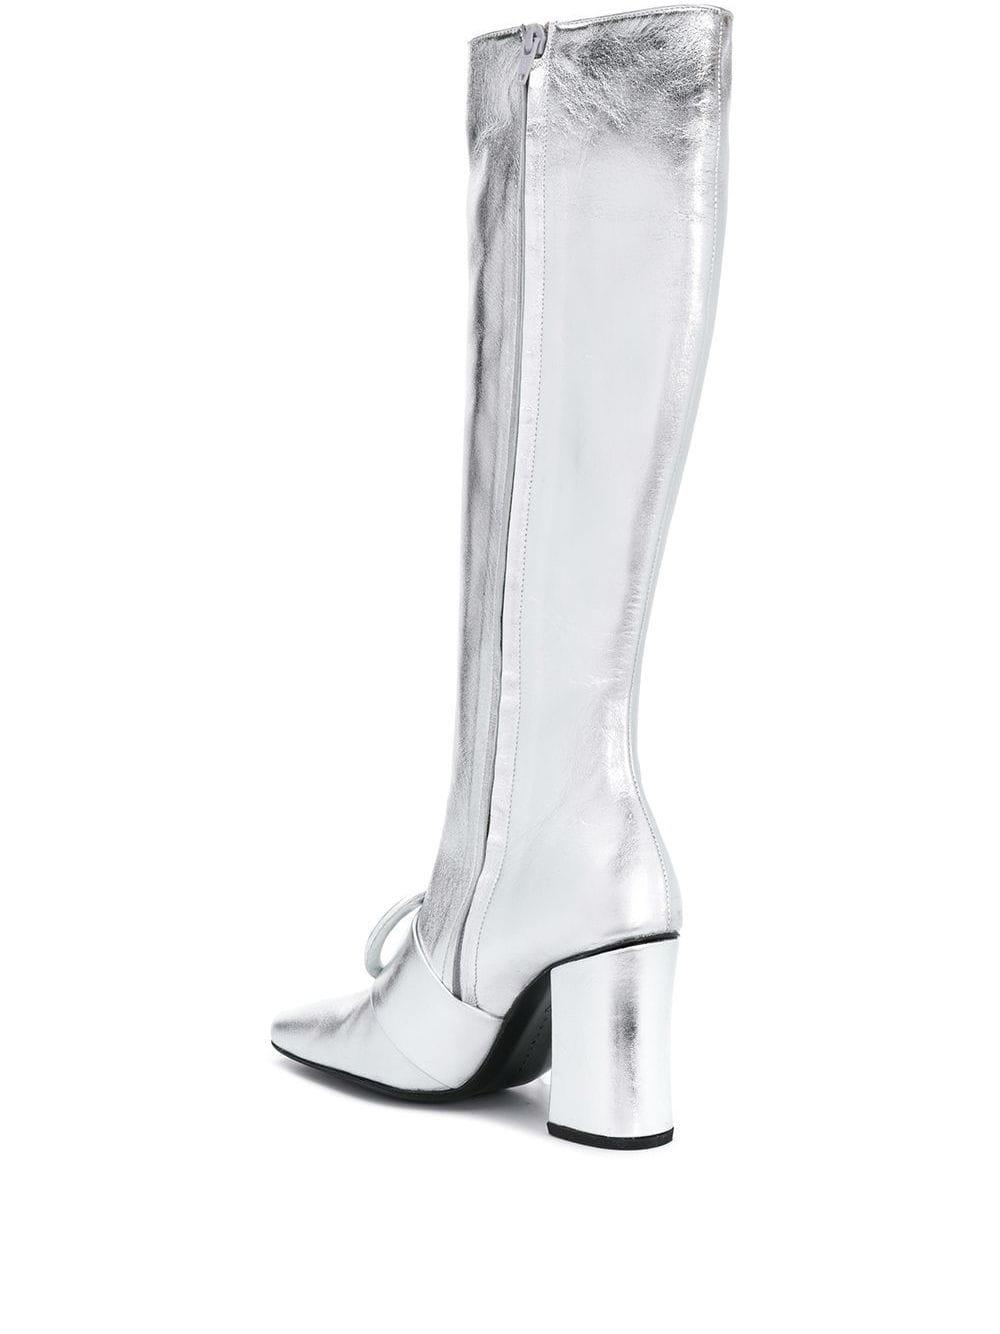 Dorateymur Leather Knee Length Boots in Metallic